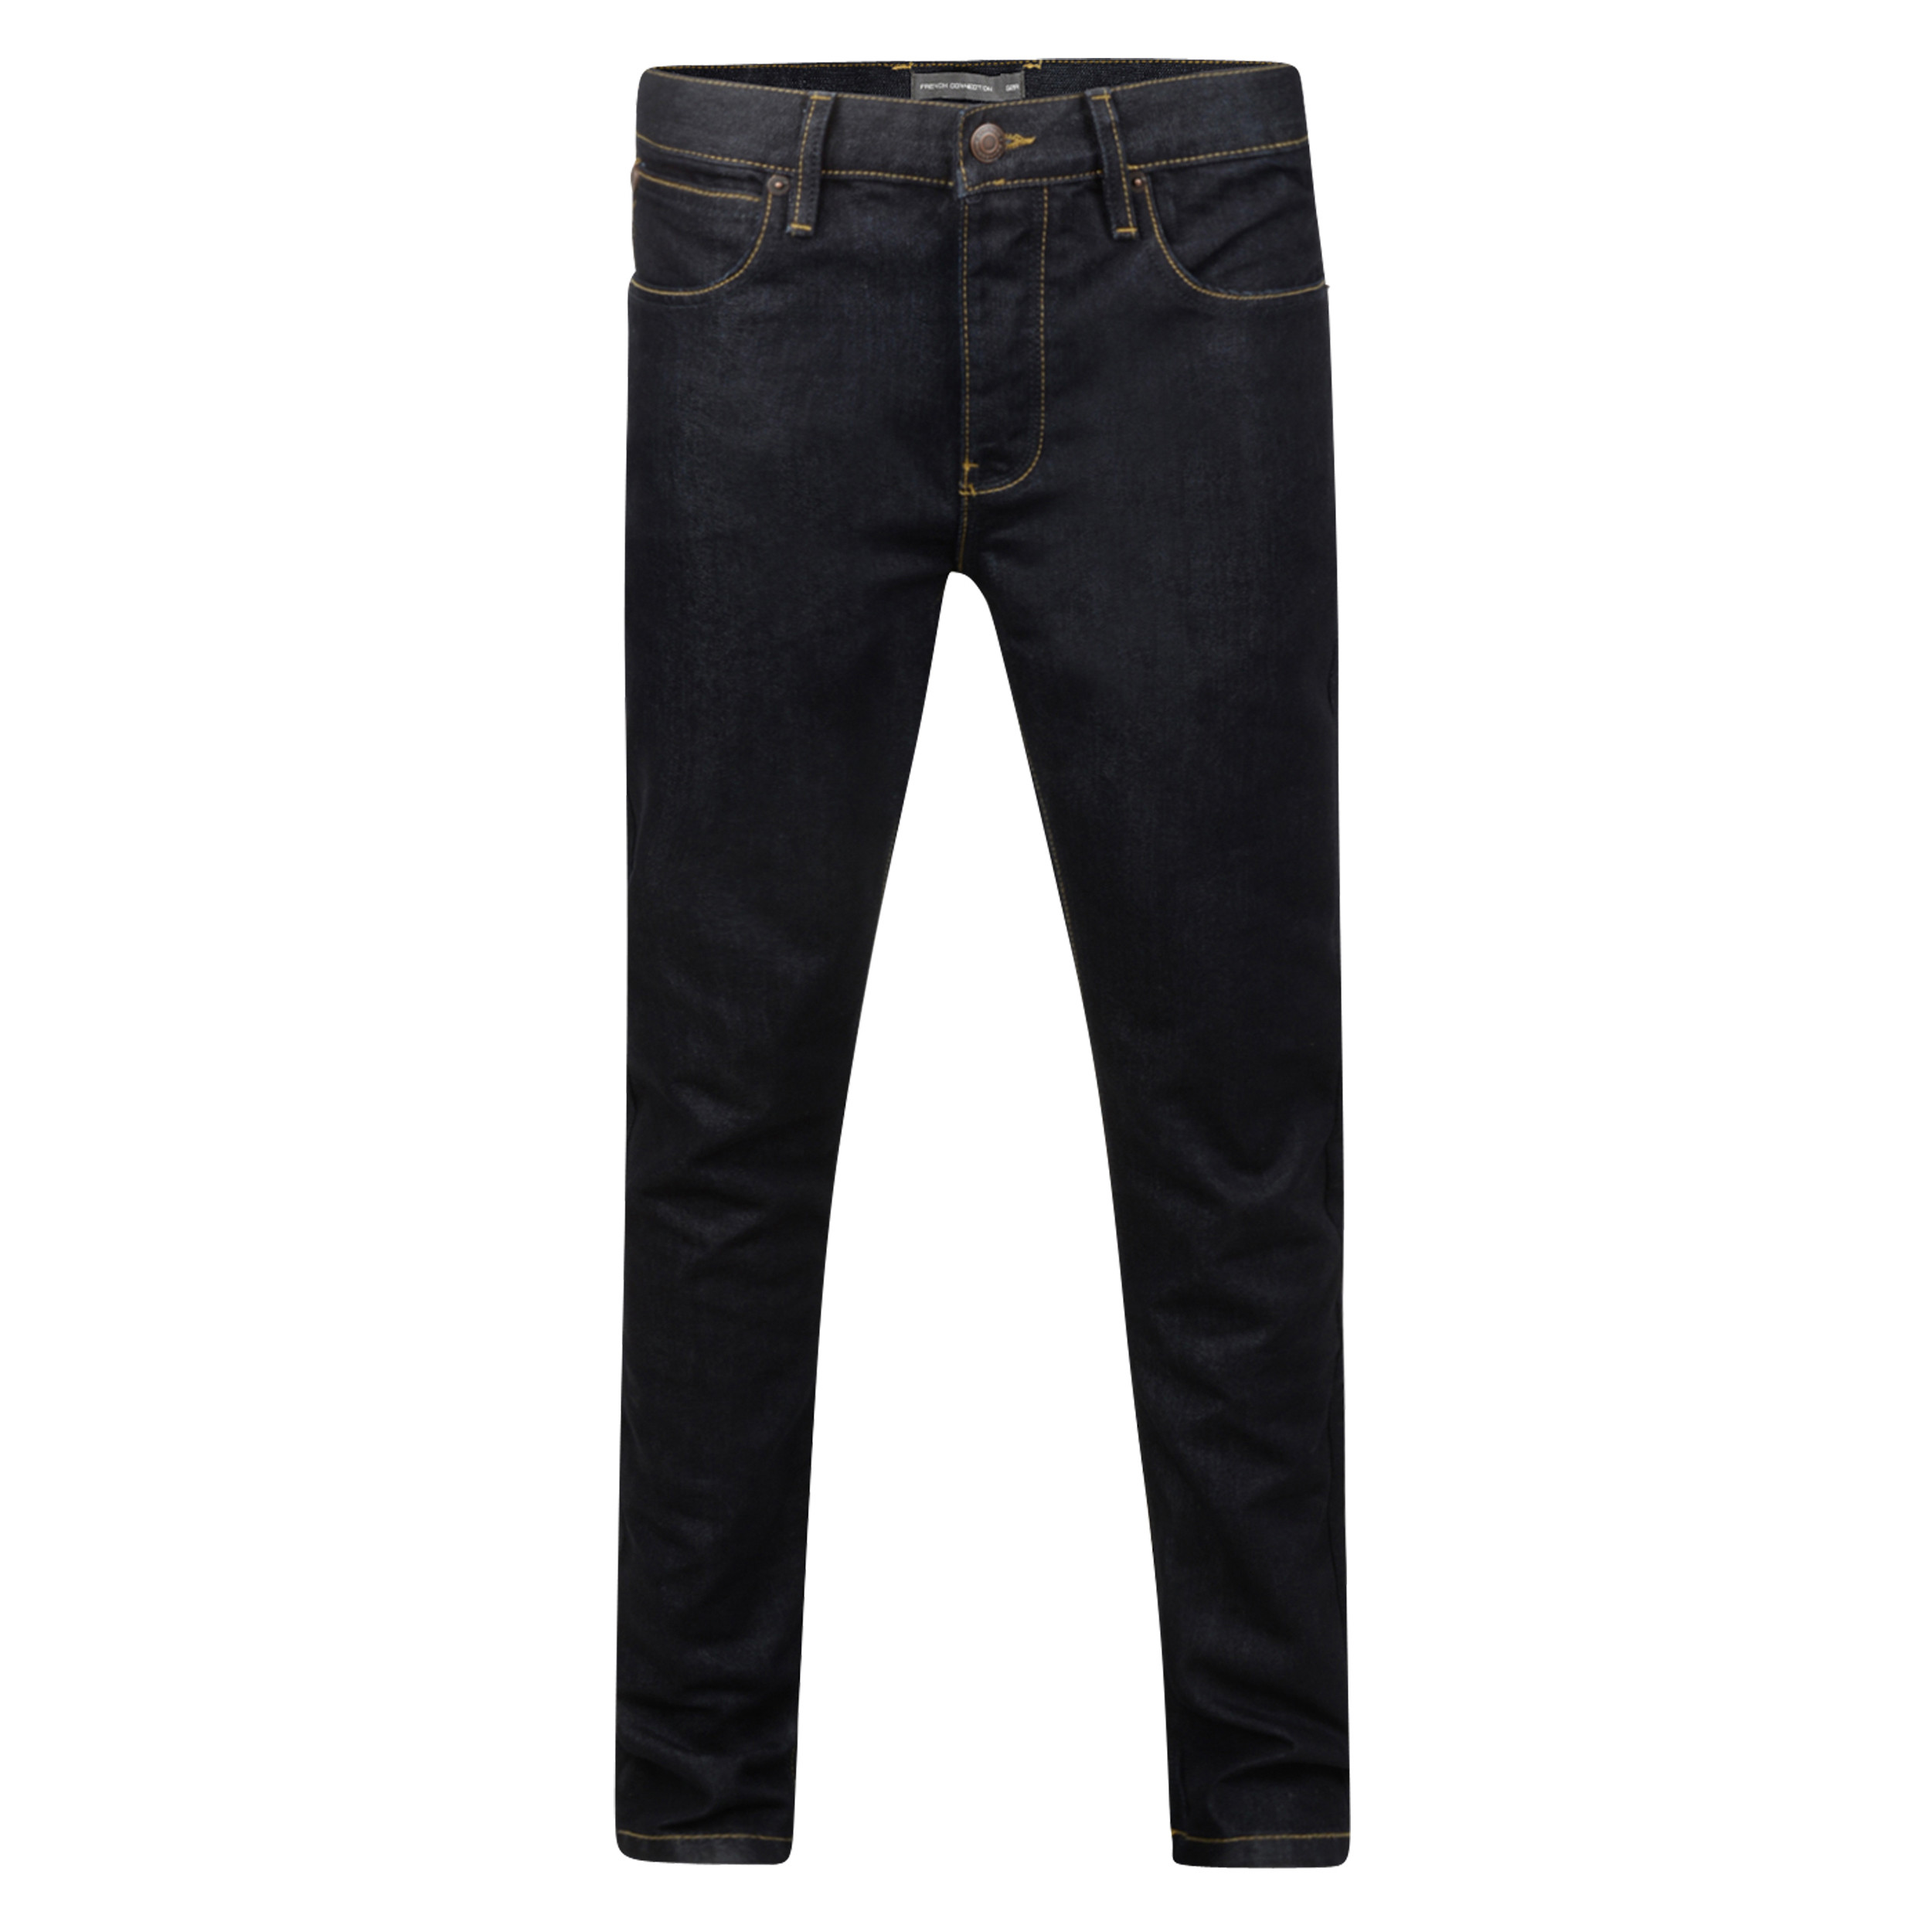 e54450a6c355 French Connection Jeans - Slim Tapered Faded Indigo 02 Denim Jeans ...